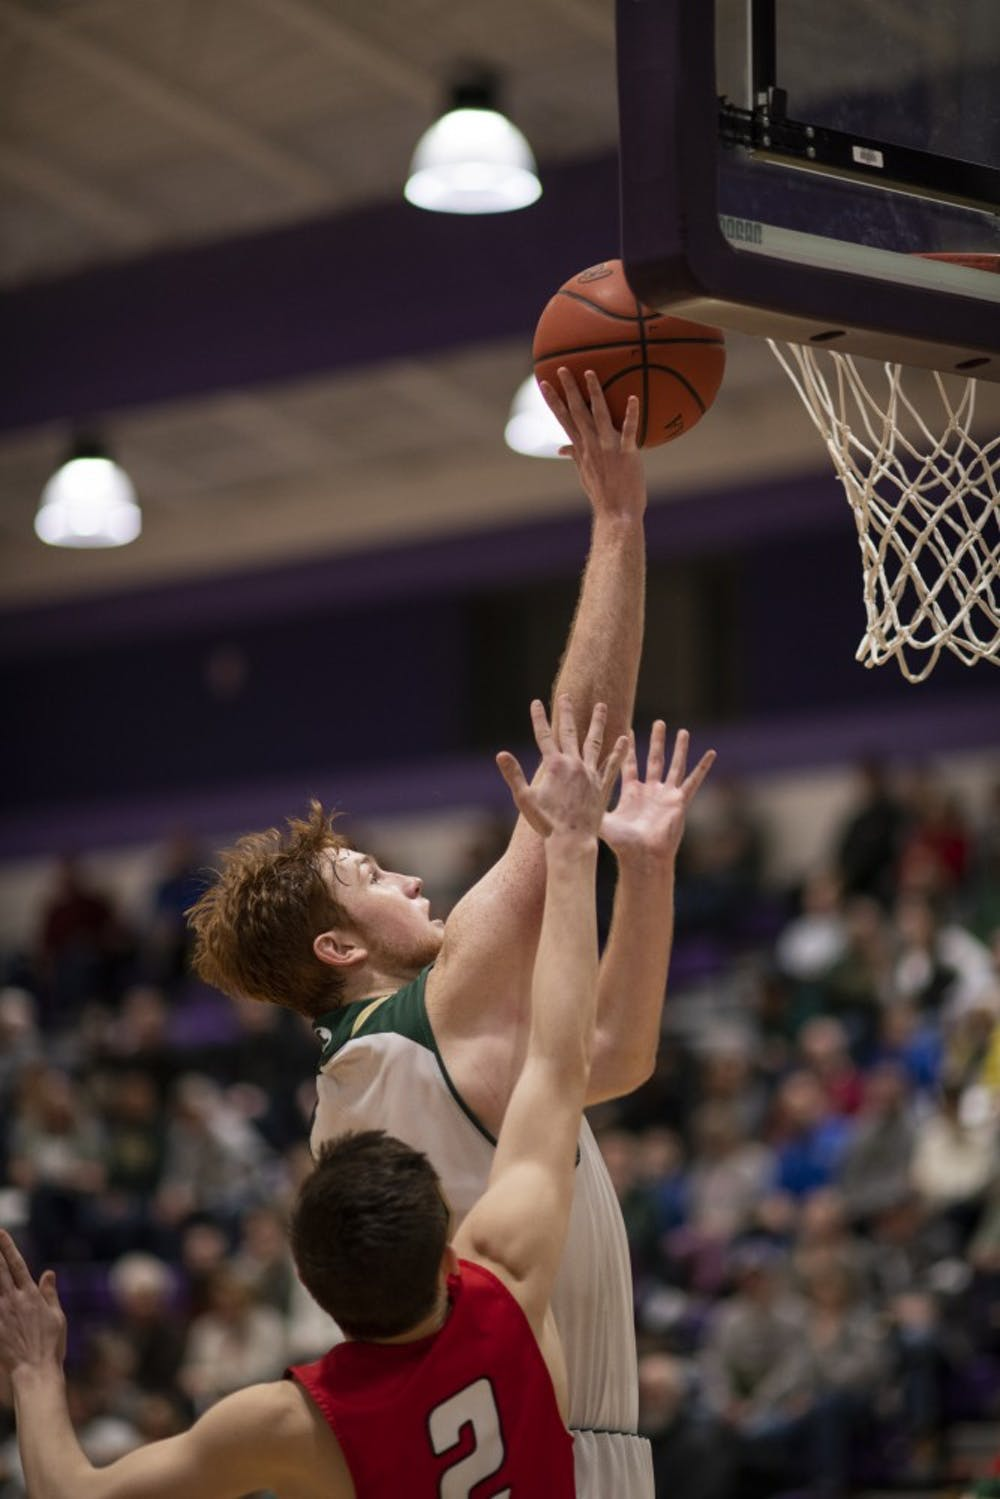 Athens Basketball: Justin Hynes has been consistent and clutch for the Bulldogs all season